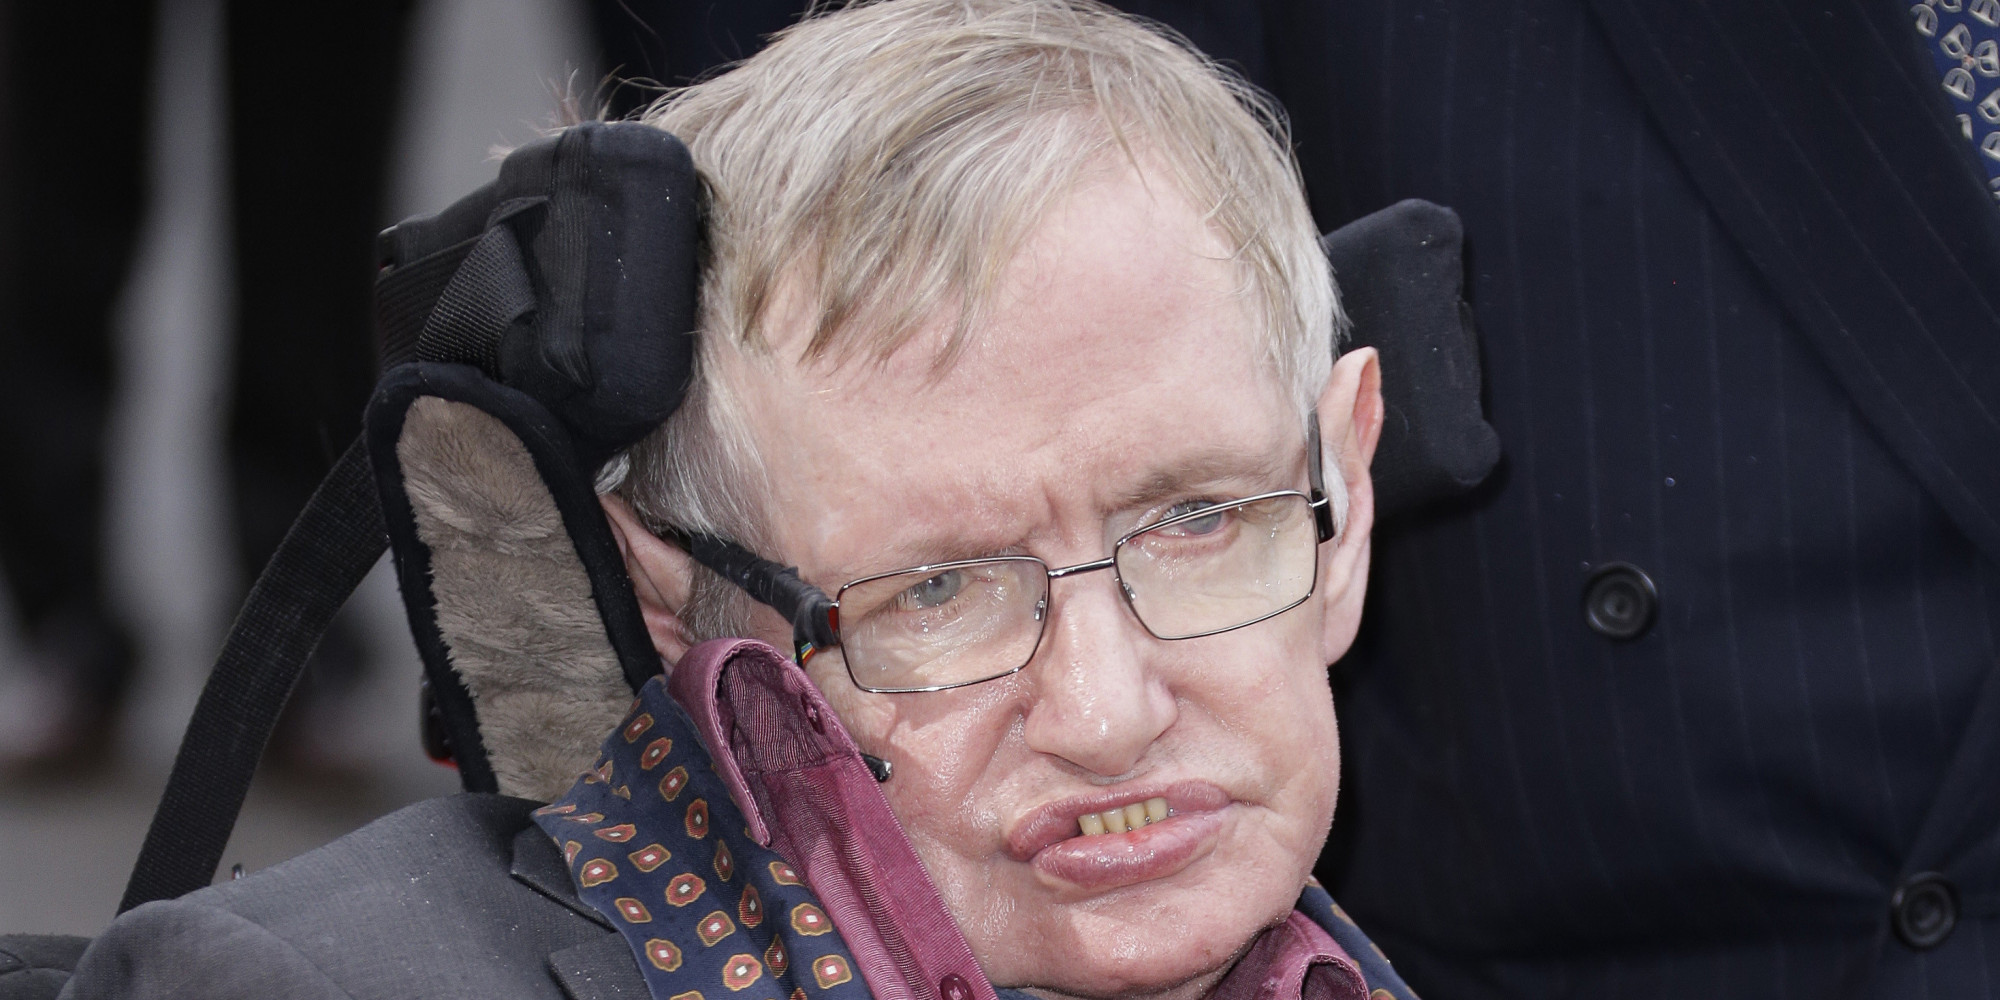 Glastonbury 2015: Stephen Hawking Joins Kanye West And The Who On The ...